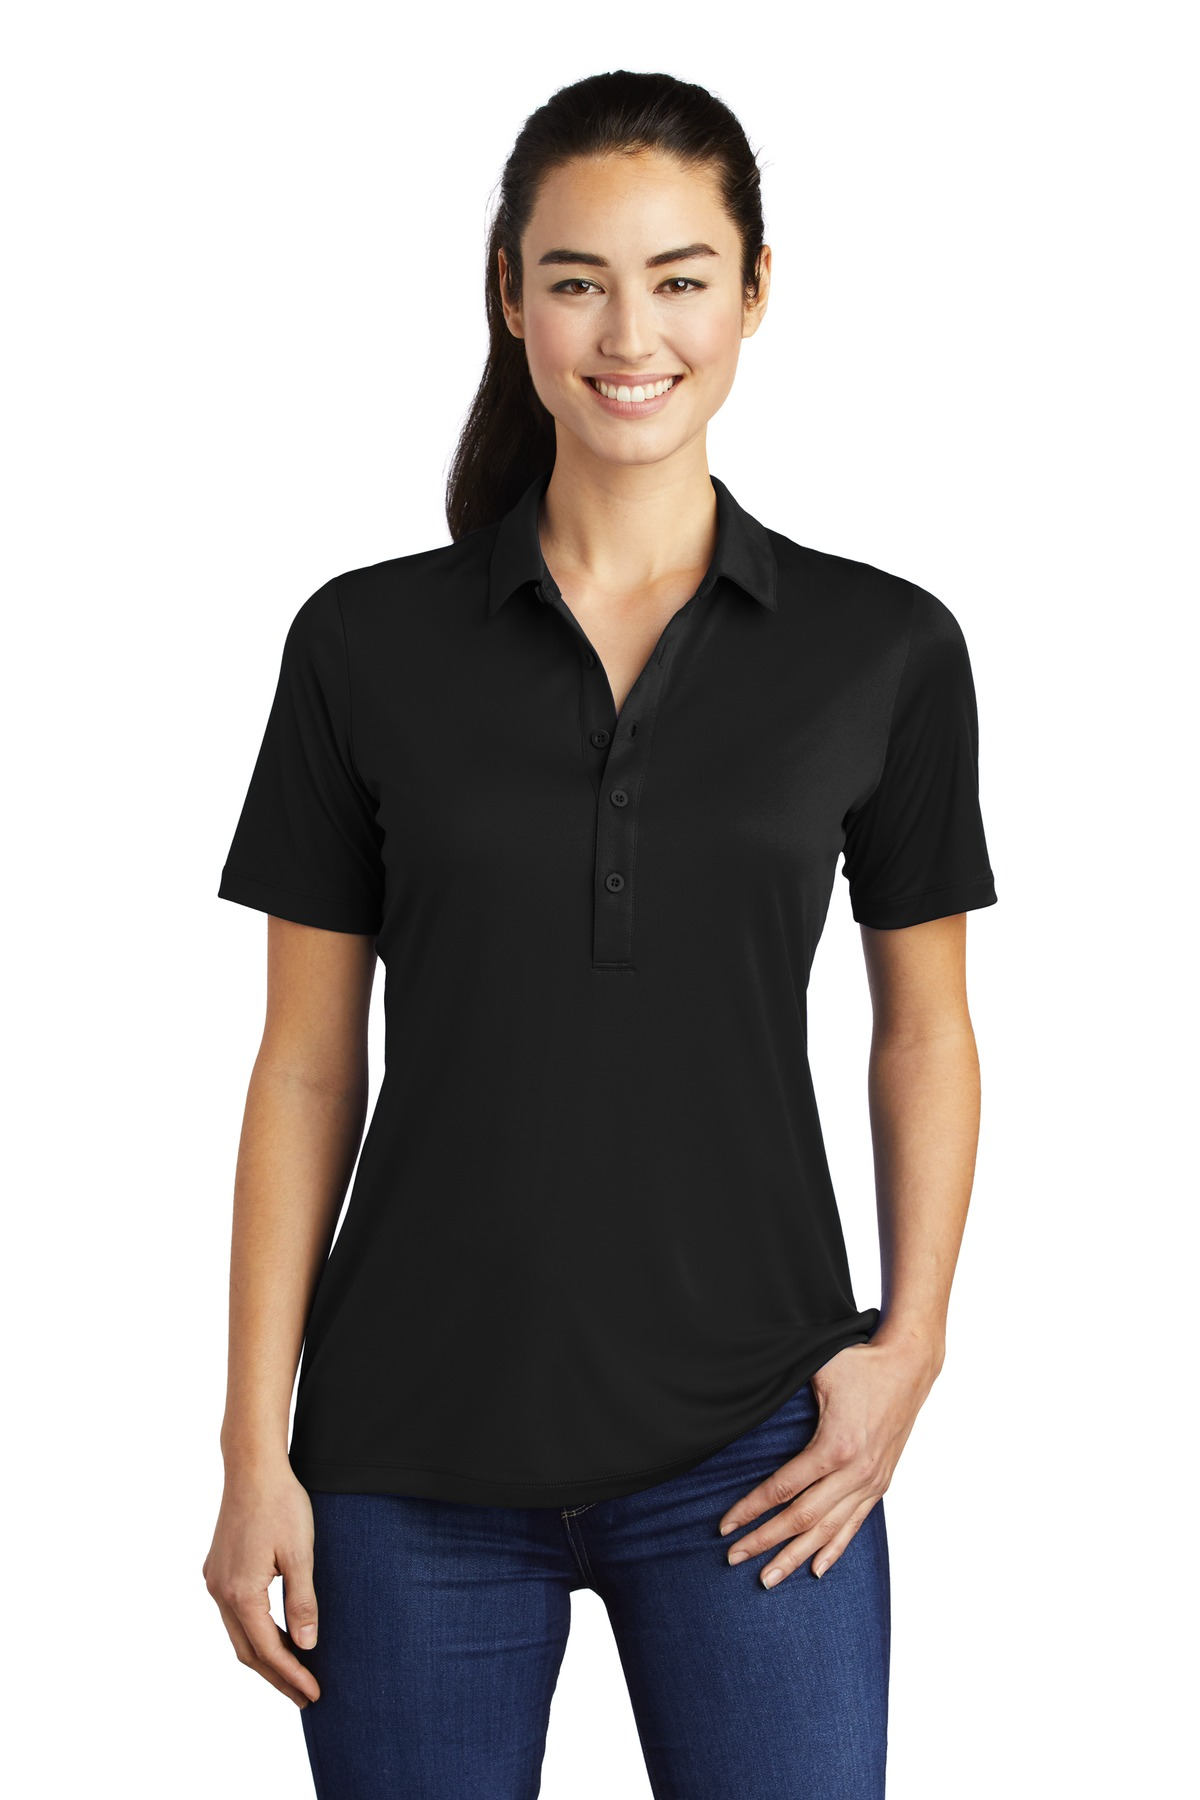 Sport-Tek ®  Ladies Posi-UV  ™  Pro Polo.  LST520 - Black